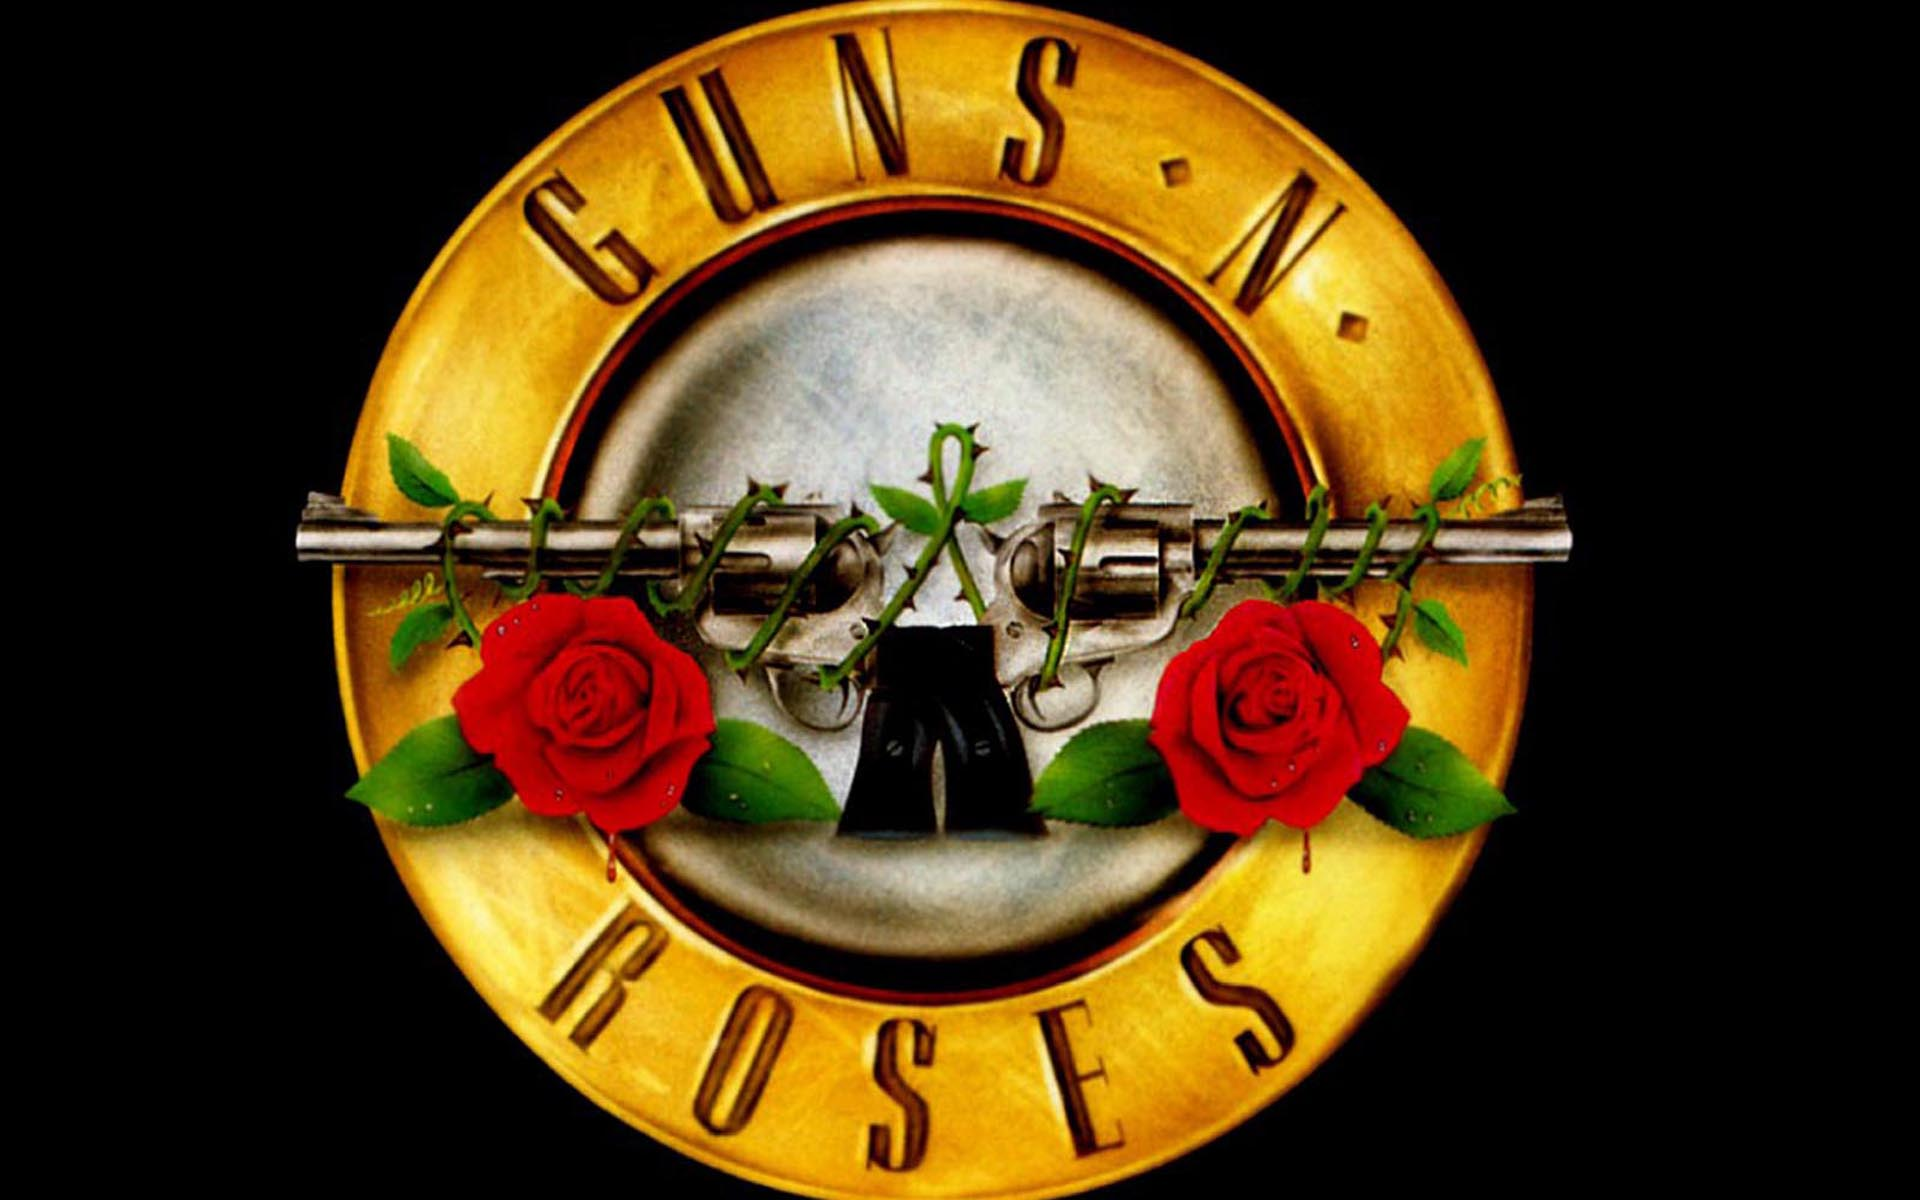 firearms-guns-n-roses-170098.jpg